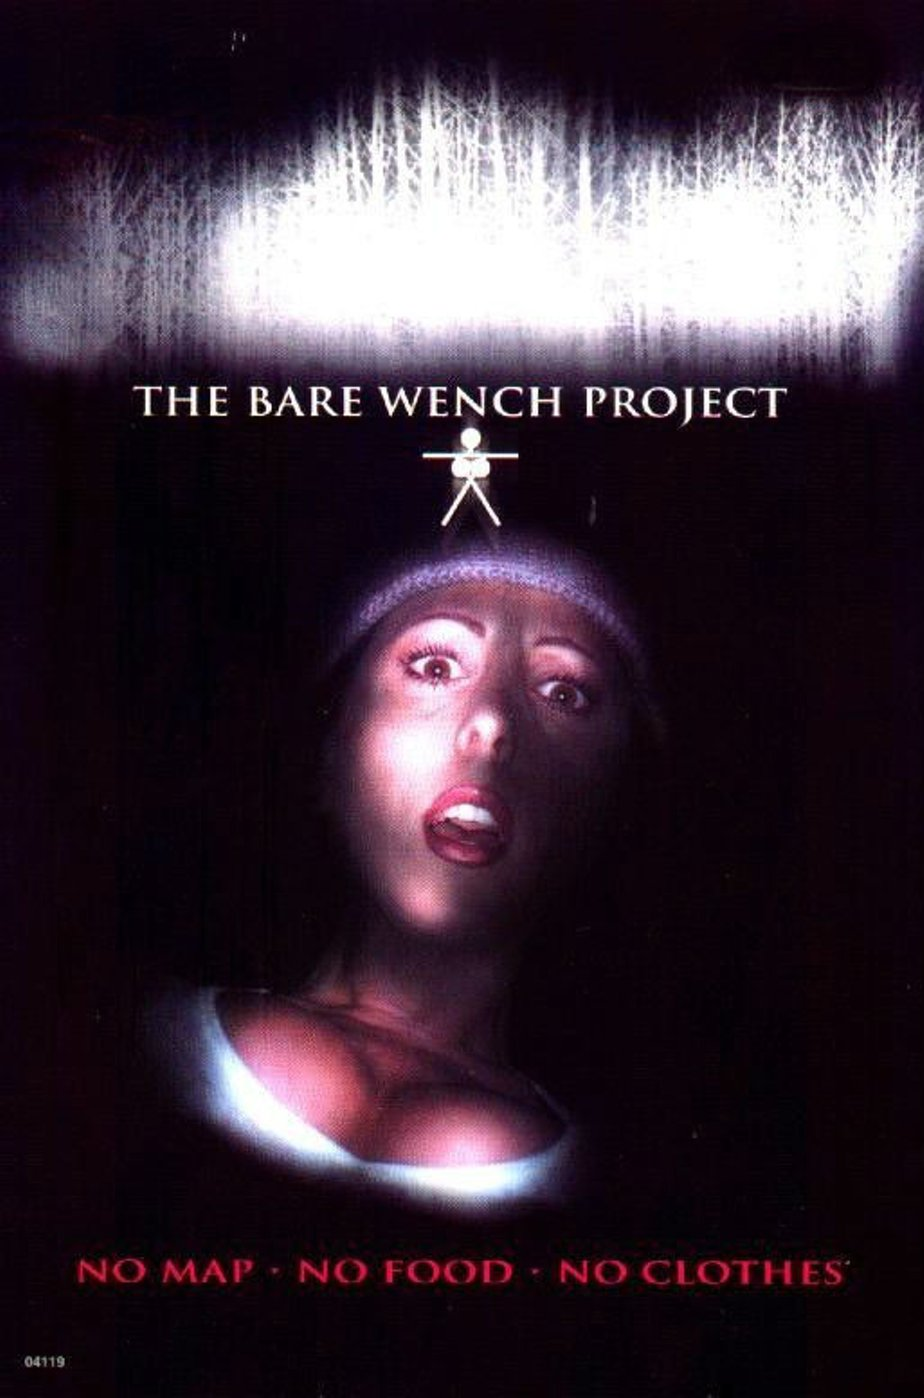 Ведьма из блэр секс версия the bare wench project 2000